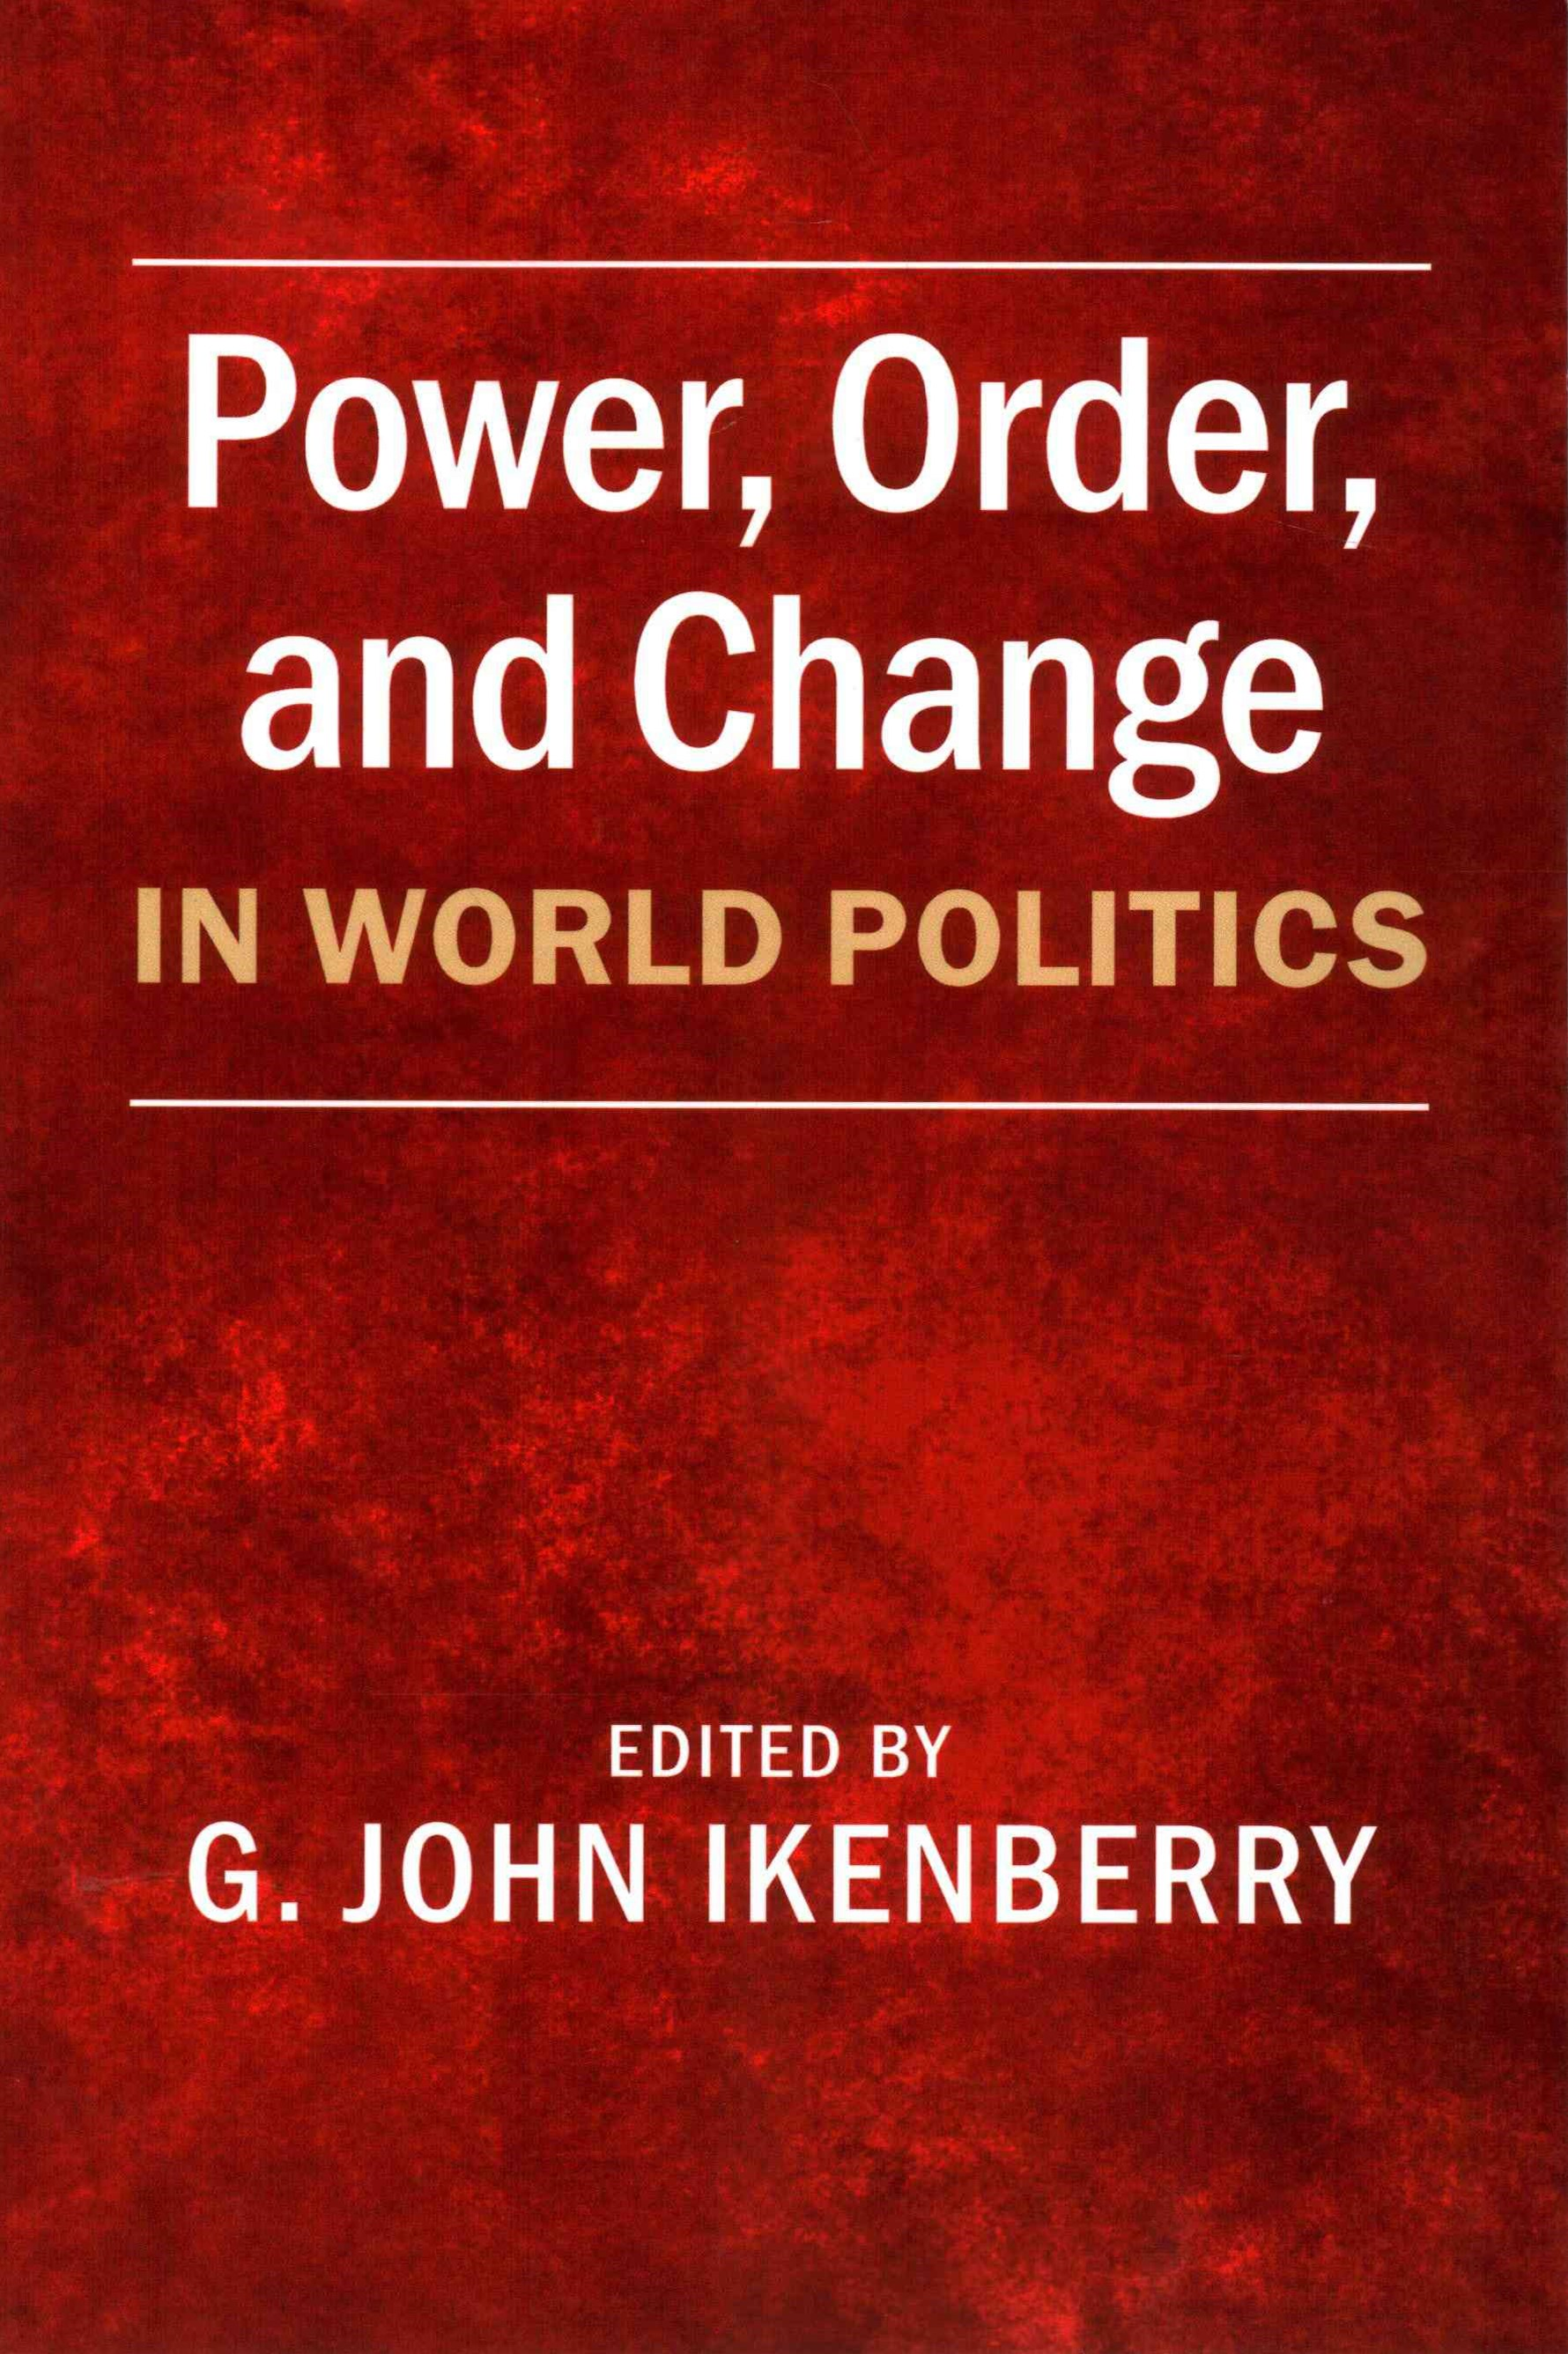 Power, Order, and Change in World Politics